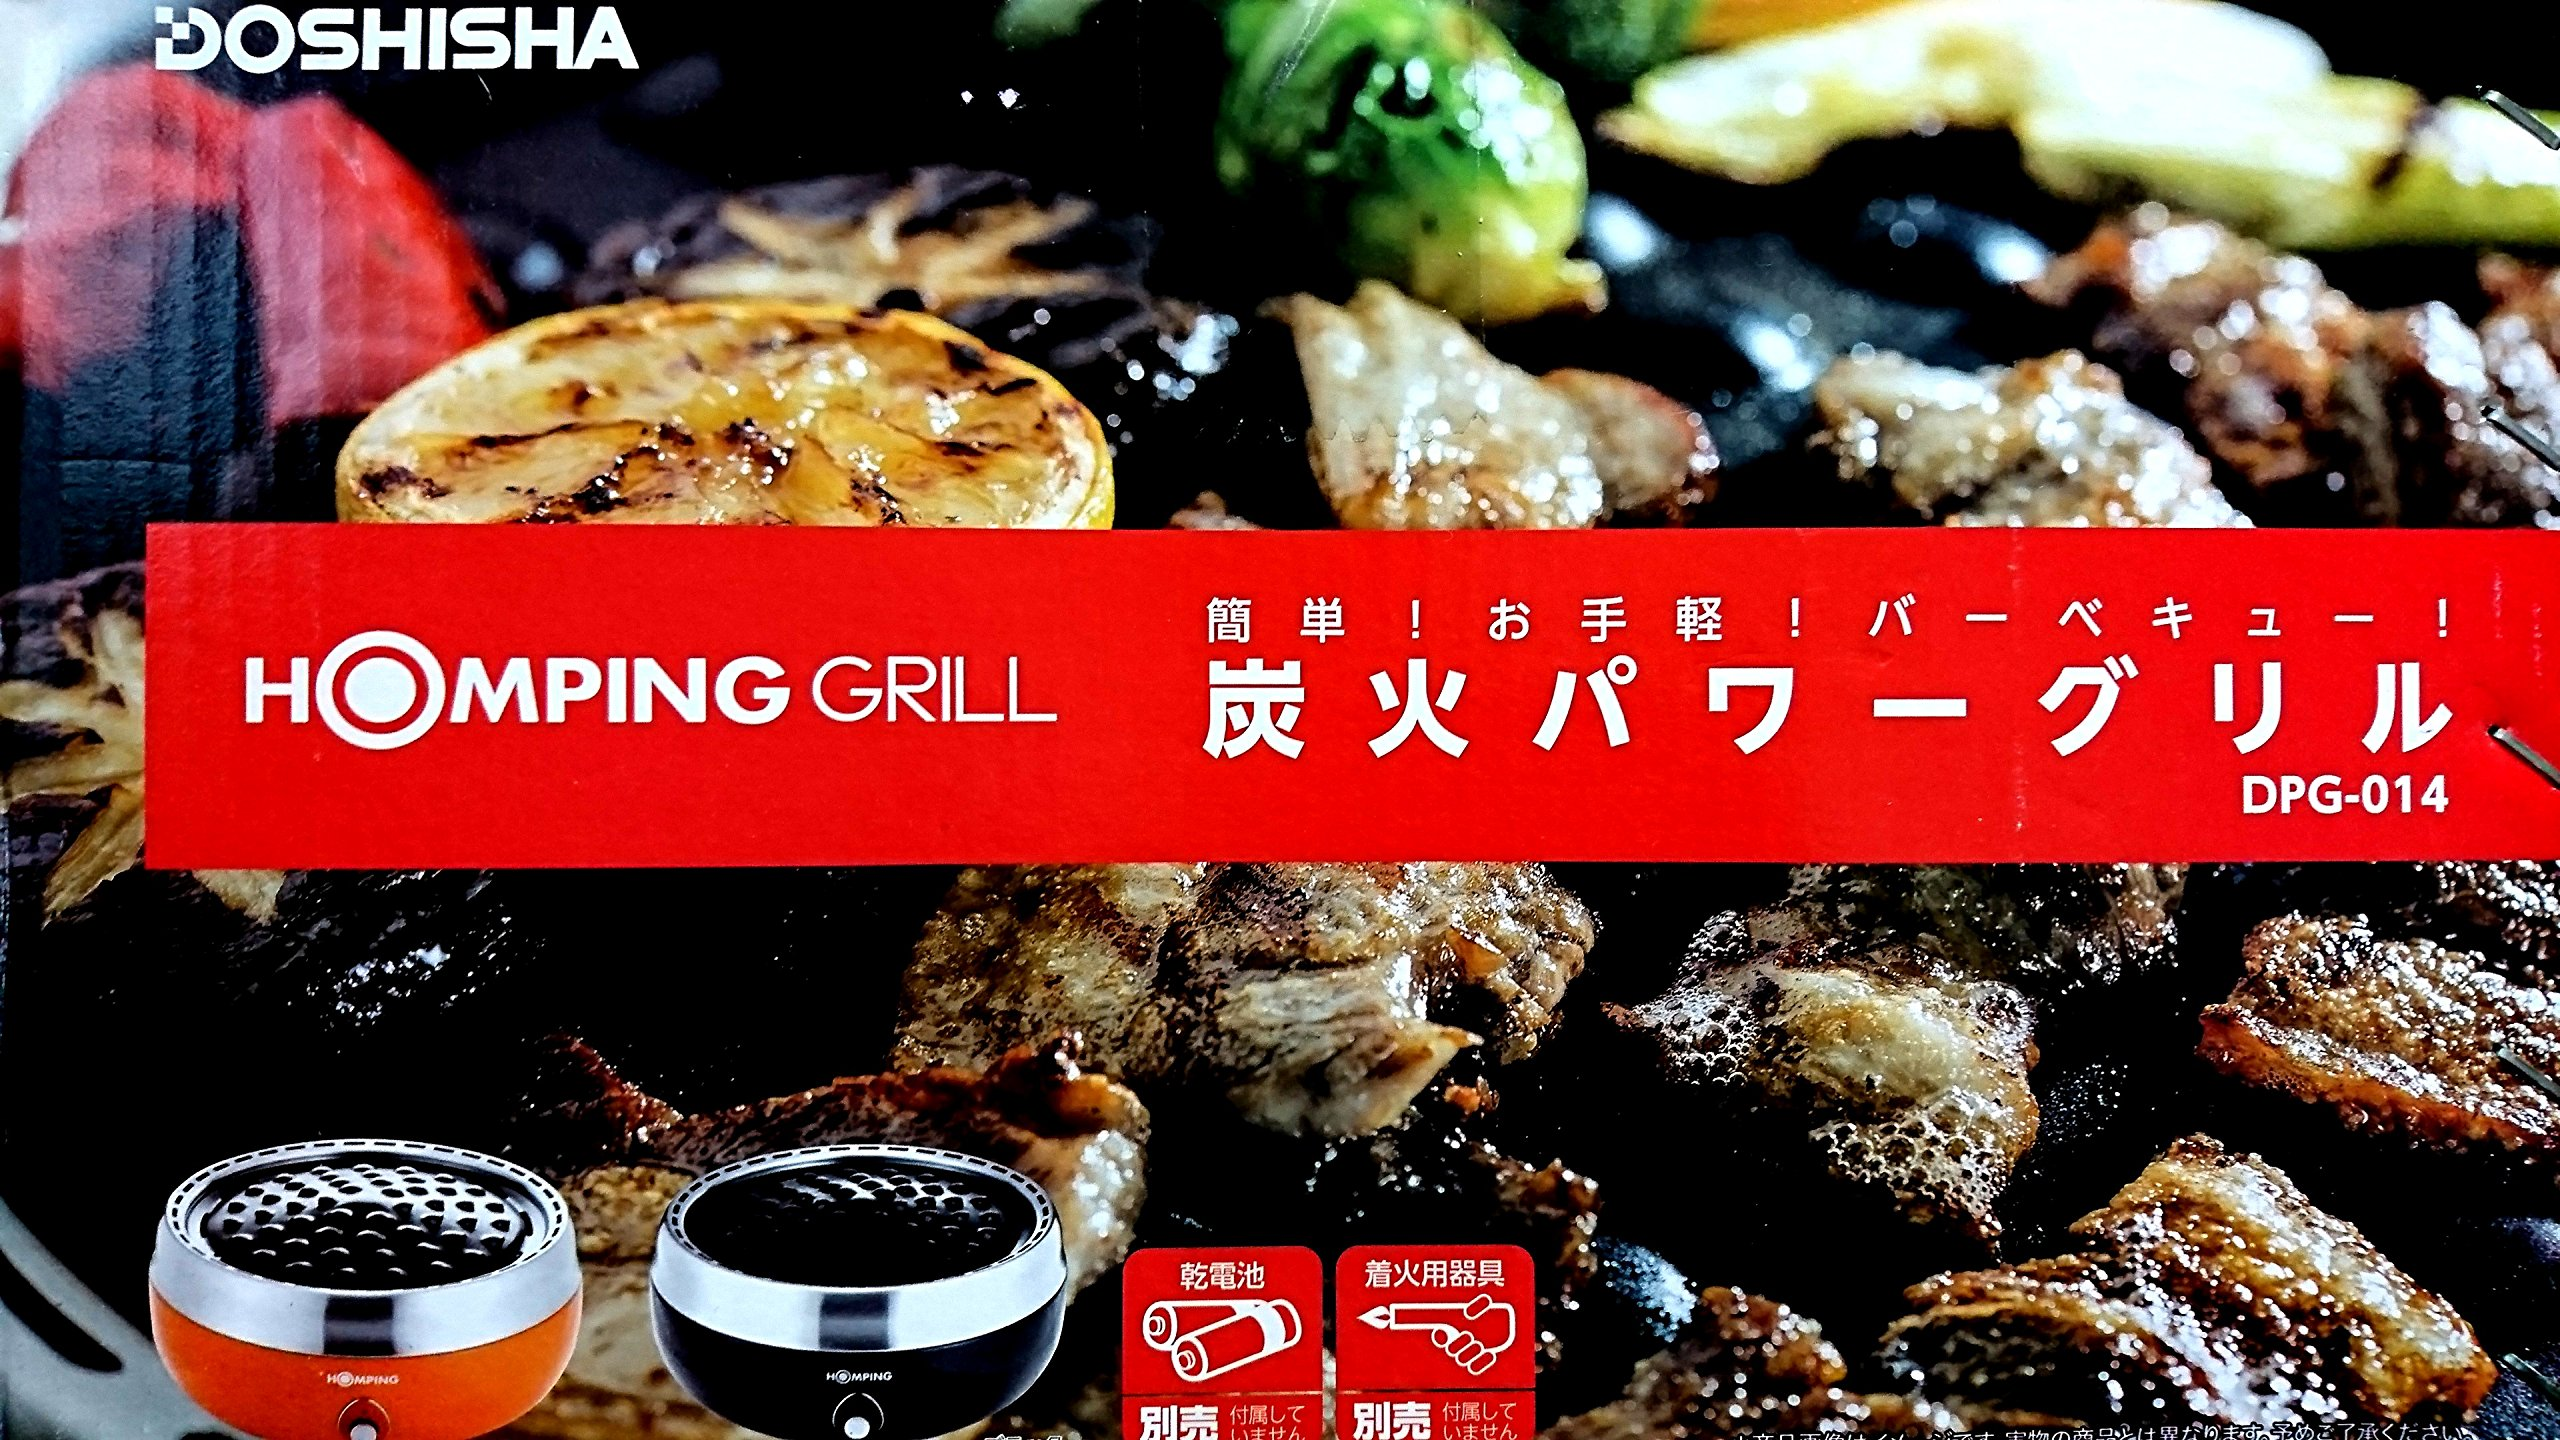 Doshisha HOMPING charcoal grill power Orange Super easy ignition From import JPN by HOMPING (Image #1)